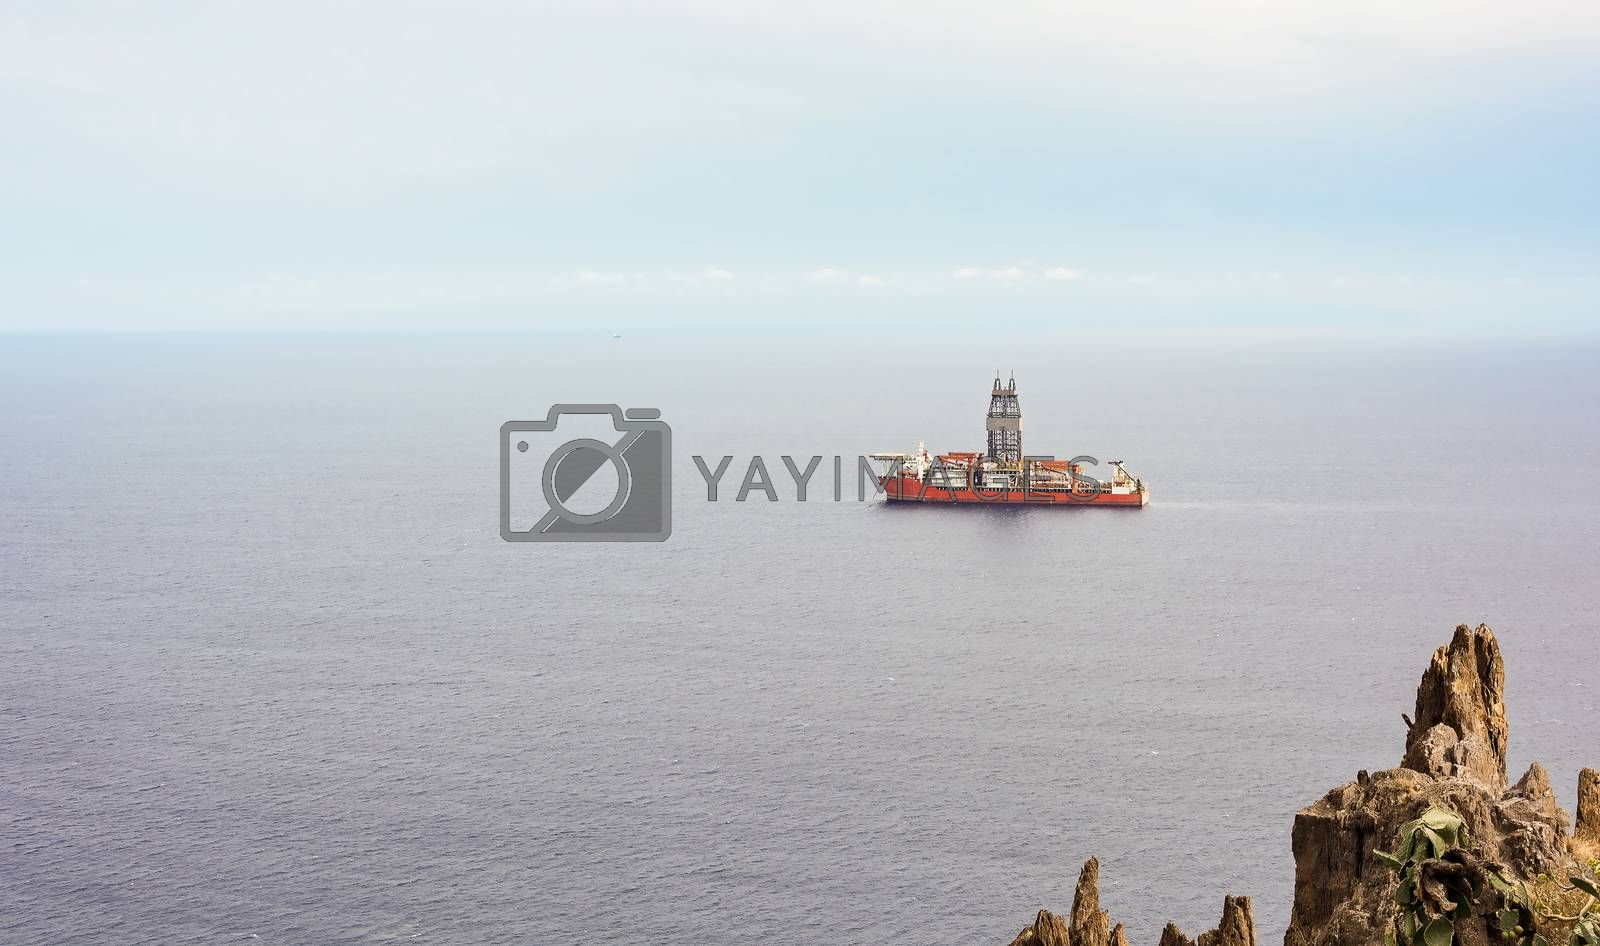 The ship is moored at the oil platform for unloading